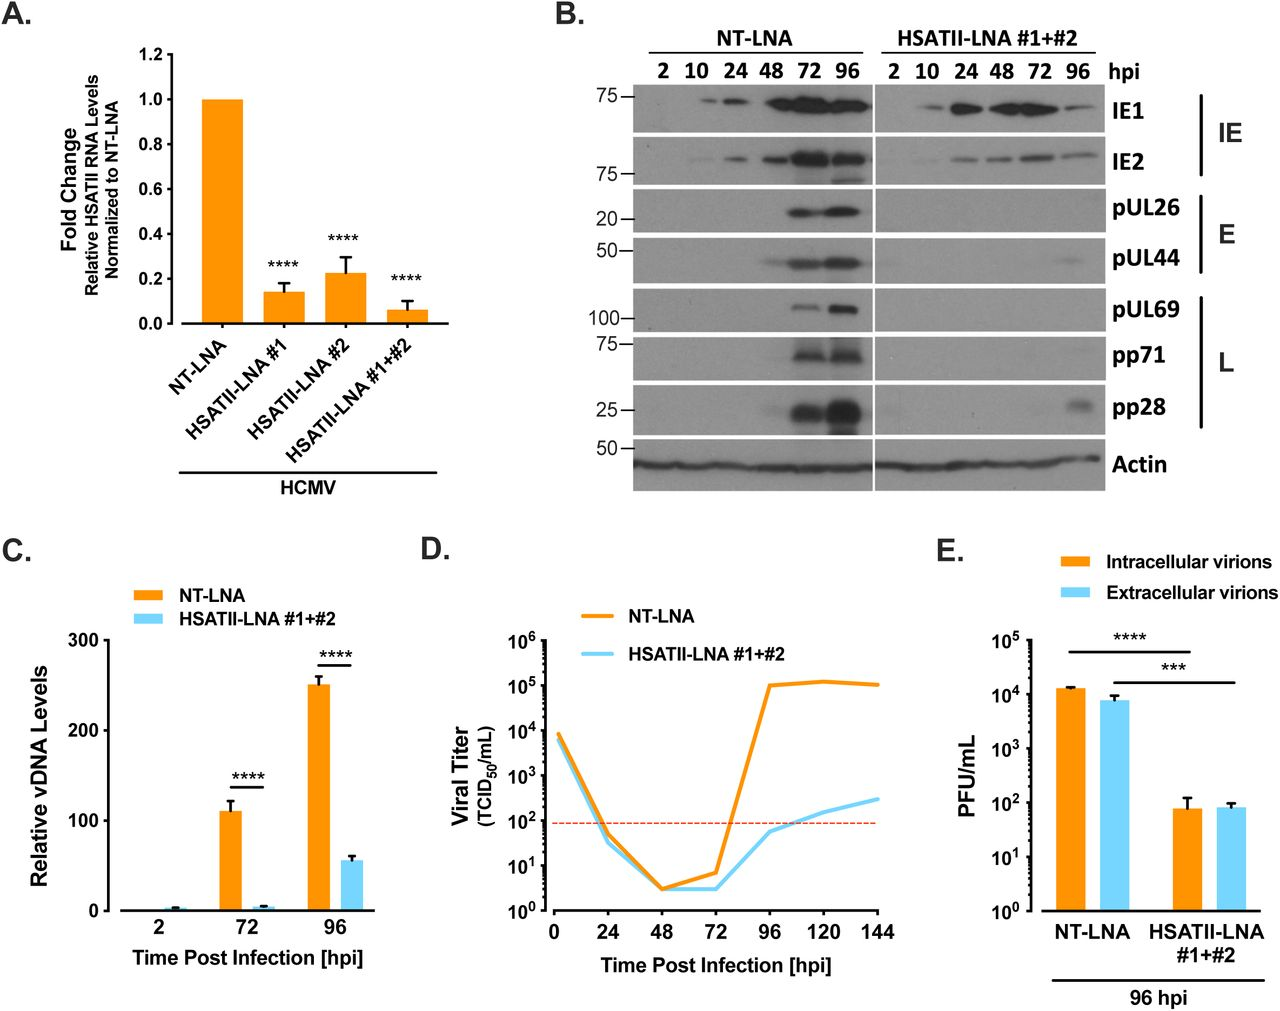 HSATII KD has strong effect on HCMV infection in epithelial cells. (A) RNA samples were collected at 24 hpi from ARPE-19 cells transfected with NT-LNA or HSATII-LNAs 24 h before HCMV (TB40/E-GFP-epi) infection at 1 TCID50/cell. RT-qPCR was performed using HSATII-specific primers. GAPDH was used as an internal control. Data are presented as a fold change mean ± SD. n=3. (B) Protein samples were collected at indicated times from ARPE-19 cells transfected with NT-LNA or HSATII-LNAs 24 h before HCMV (TB40/E-GFP-epi) infection at 1 TCID 50 /cell. Protein levels were analyzed by the western blot technique using antibodies specific to IE1, IE2, pUL26, pUL44, pUL69, pp71 and pp28. Actin was used as a loading control. (C) Total DNA was collected at indicated times from ARPE-19 cells transfected with NT-LNA or HSATII-LNAs 24 h before HCMV (TB40/E-GFP-epi) infection at 1 TCID50/cell. vDNA and cellular DNA copy numbers were determined. Data are presented as a fold change mean ± SD of the relative vDNA to cellular DNA ratio. n=3 (D) Media samples were collected at indicated times from ARPE-19 cells transfected with NT-LNA or HSATII-LNAs 24 h before HCMV (TB40/E-GFP-epi) infection at 1 TCID 50 /cell. TCID50 ml -1 values were determined . (E) Intracellular and extracellular virions were collected at indicated times from ARPE-19 cells transfected with either NT-LNA, HSATII-LNA#1, HSATII-LNA#2 or both HSATII-LNAs 24 h before HCMV (TB40/E-GFP-epi) infection at 1 TCID 50 /cell. TCID50 ml -1 values were determined. Data are presented as a mean ± SD. n =3. *** P